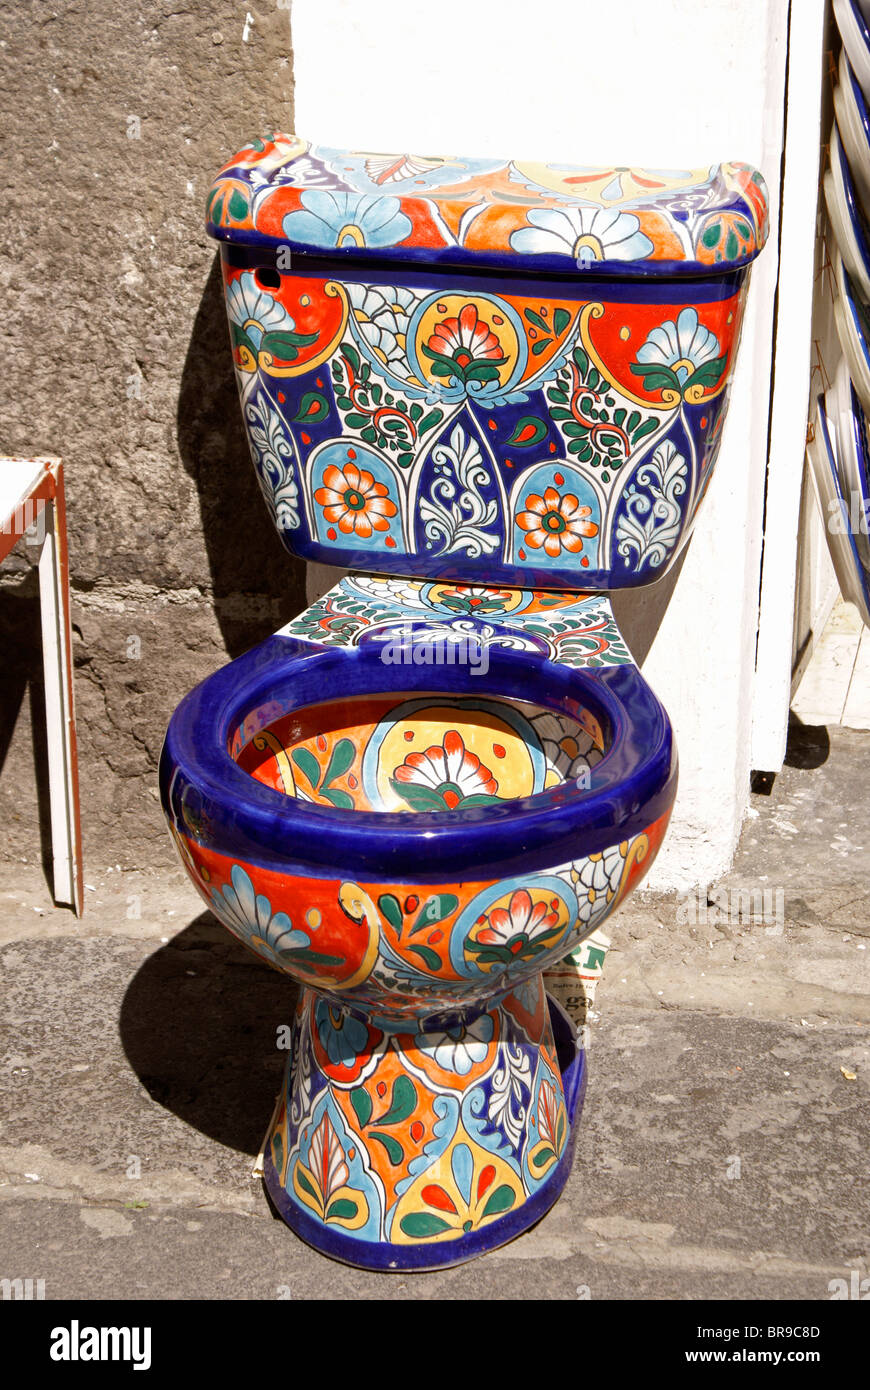 brightly-painted-toilet-for-sale-at-el-p